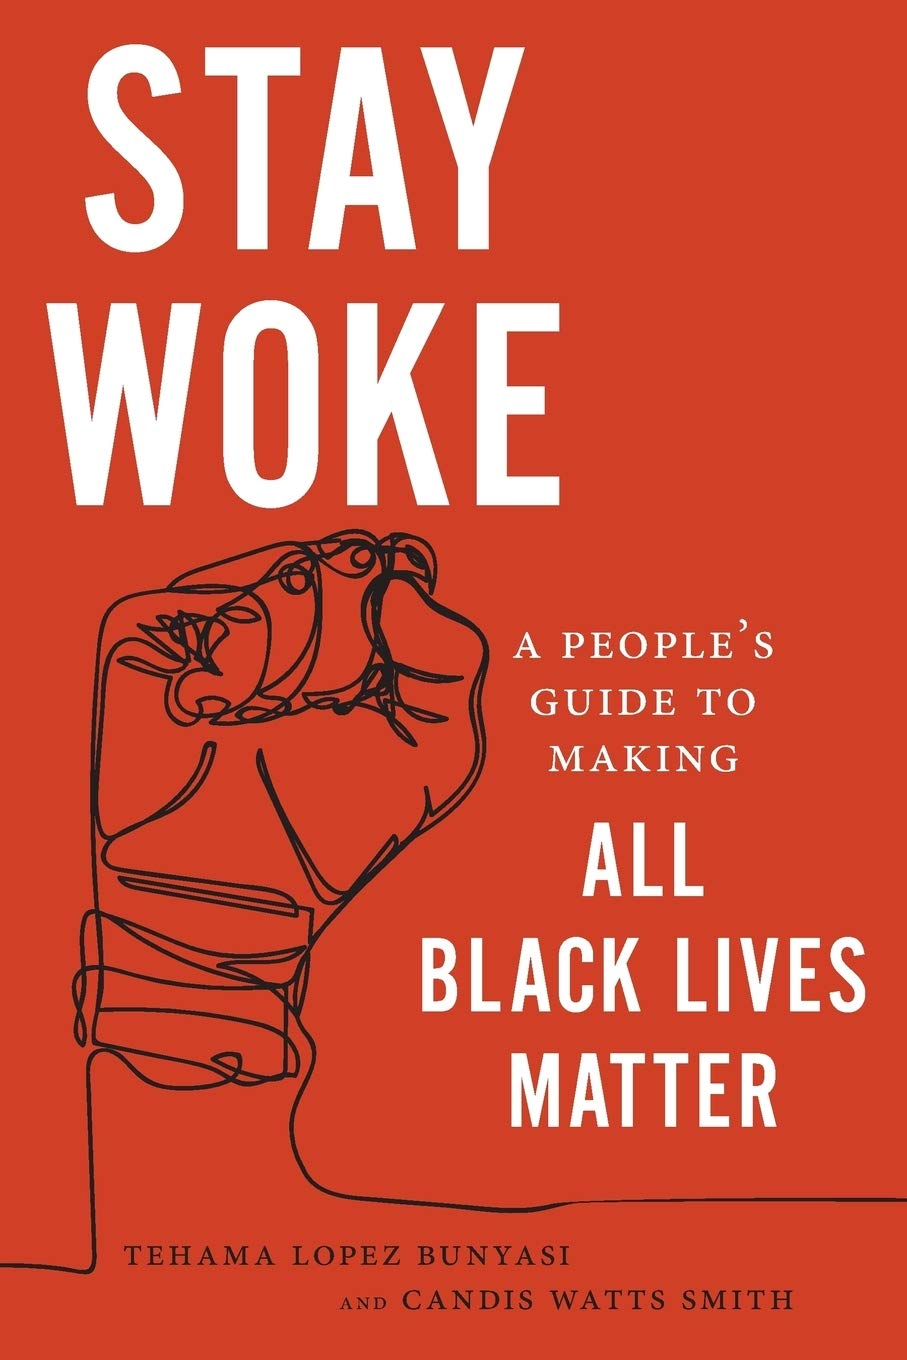 Stay Woke book cover